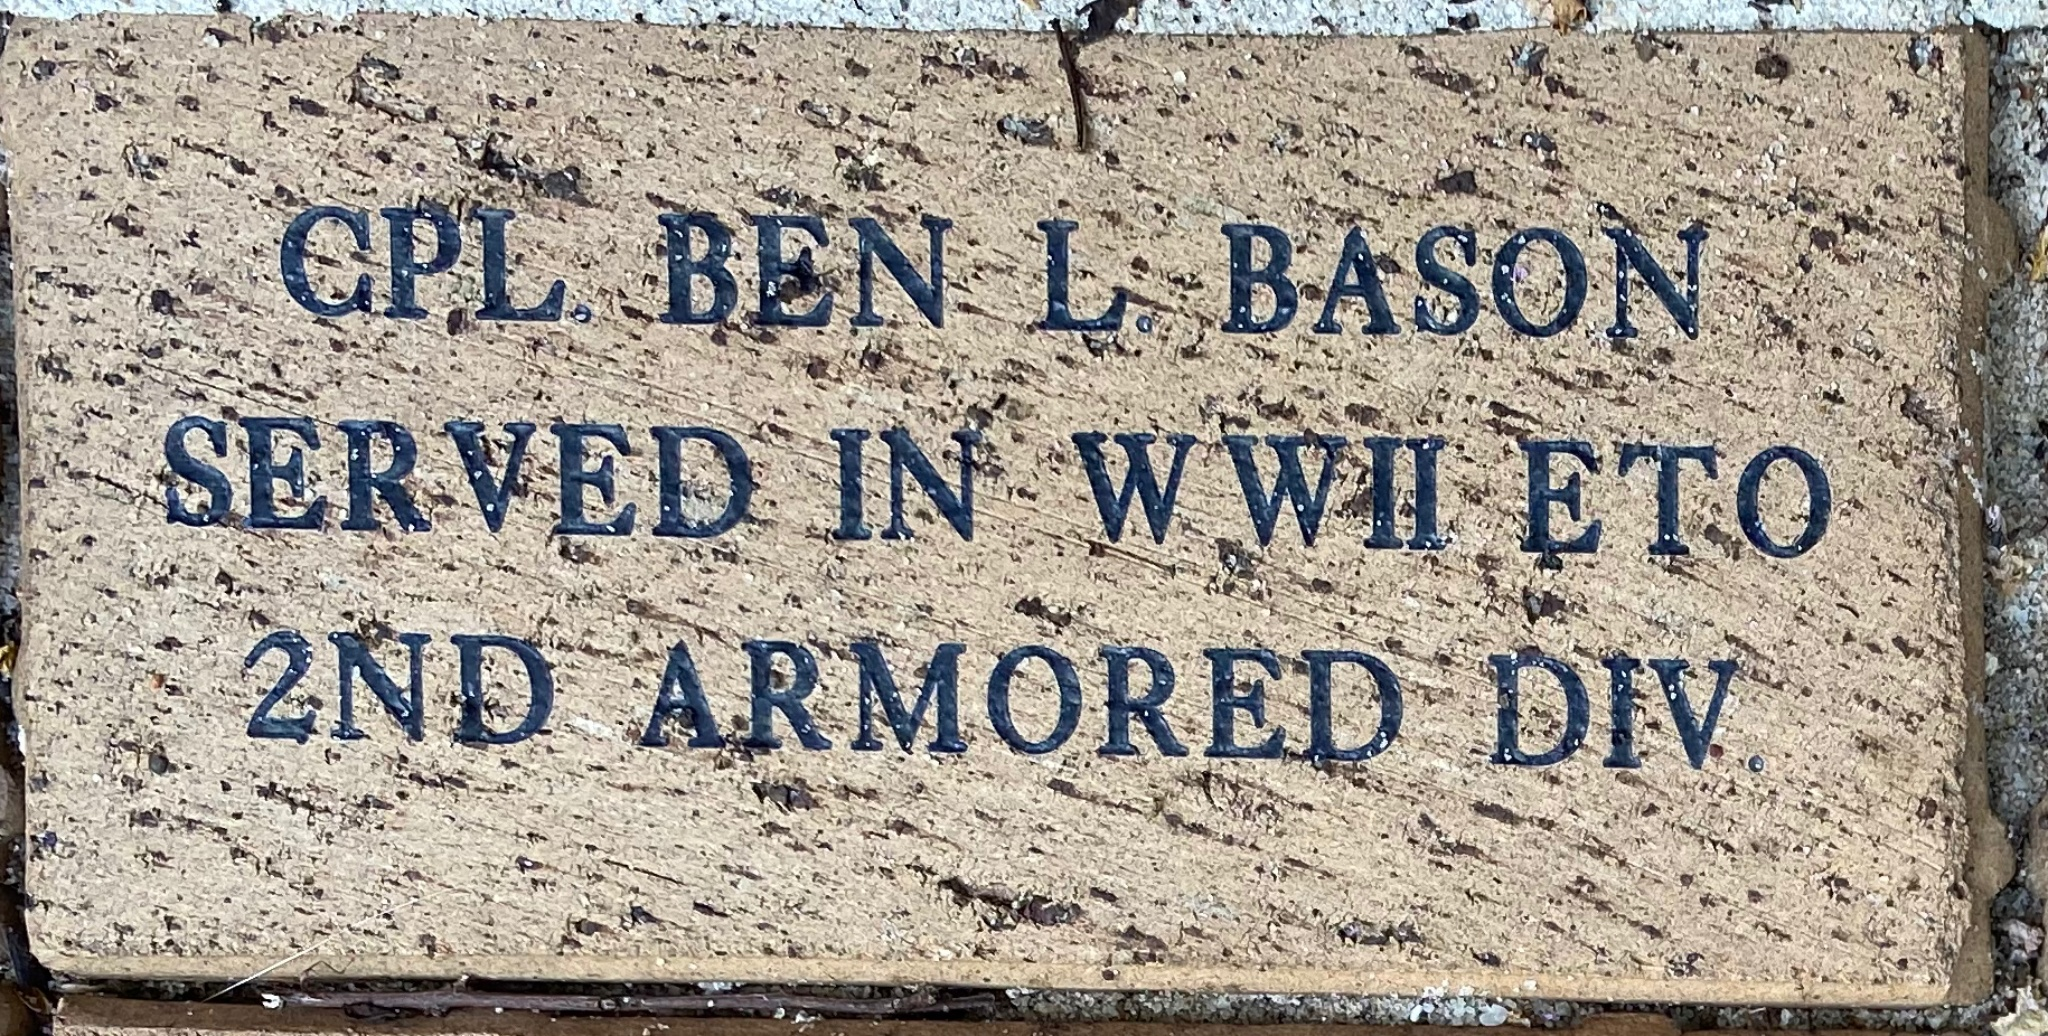 CPL BEN L. BASON SERVED IN WWII ETO 2ND ARMORED DIV